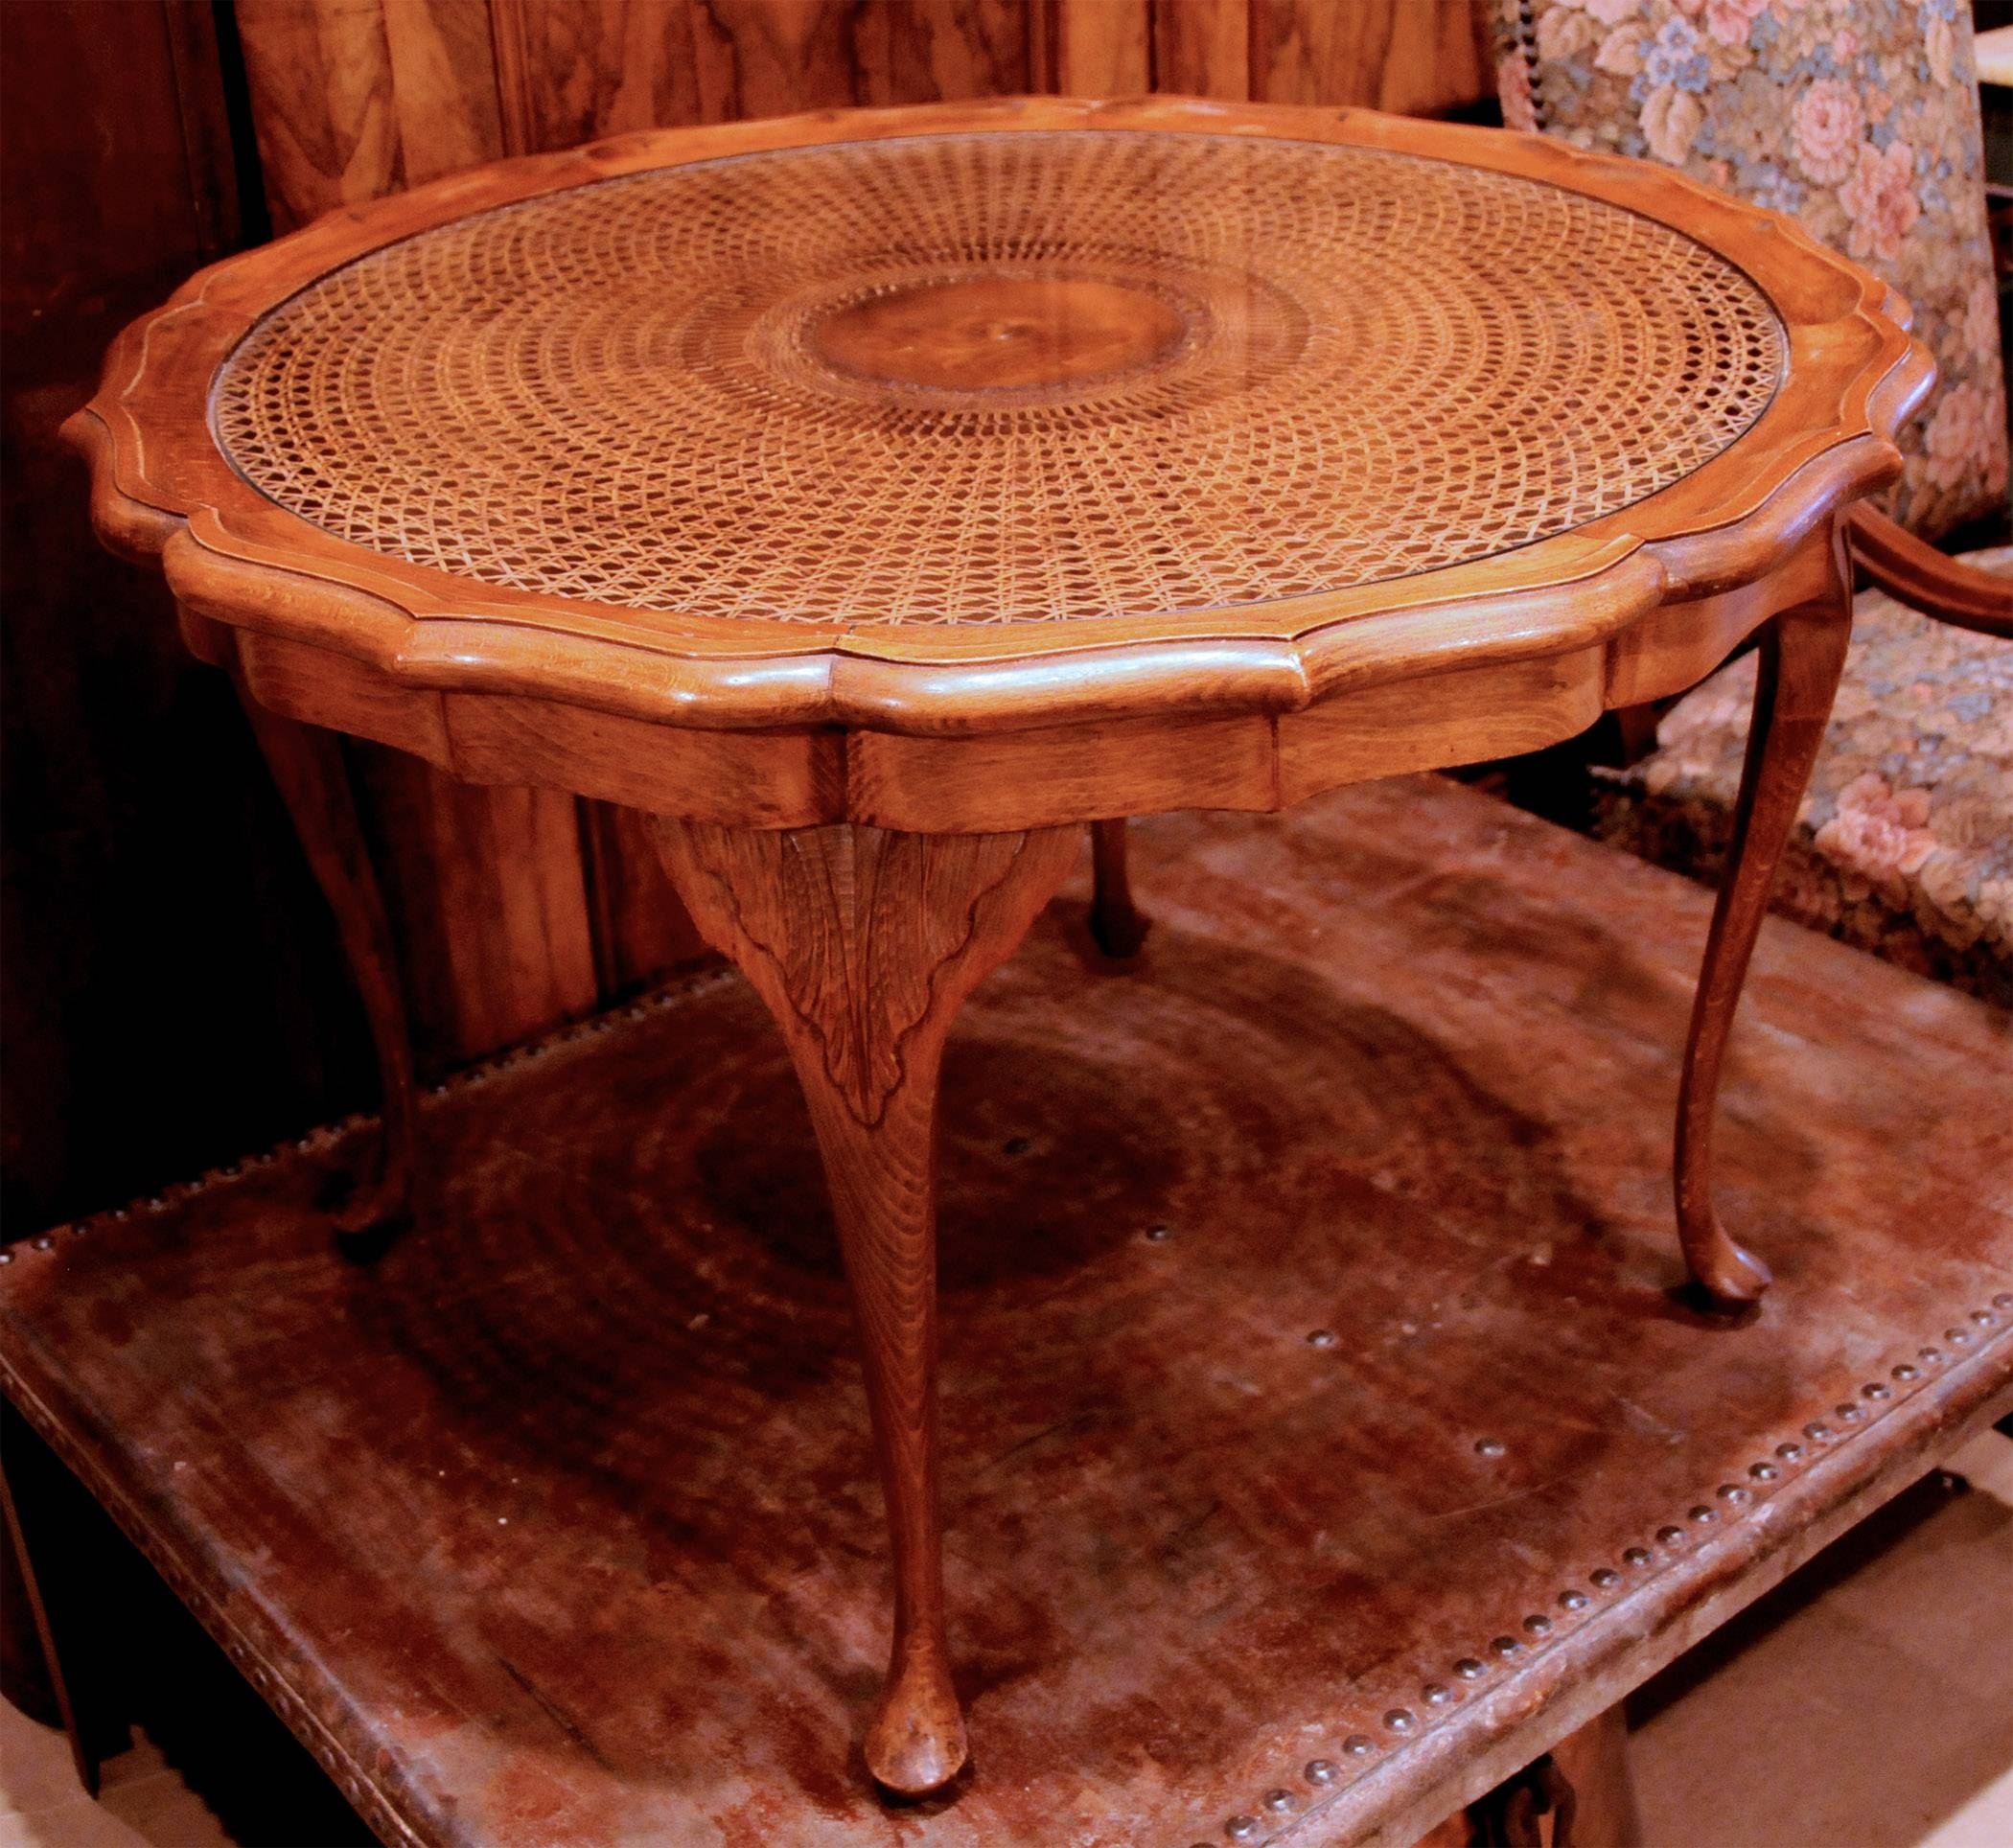 Coffee Table Archives - pertaining to Antique Glass Top Coffee Tables (Image 9 of 30)